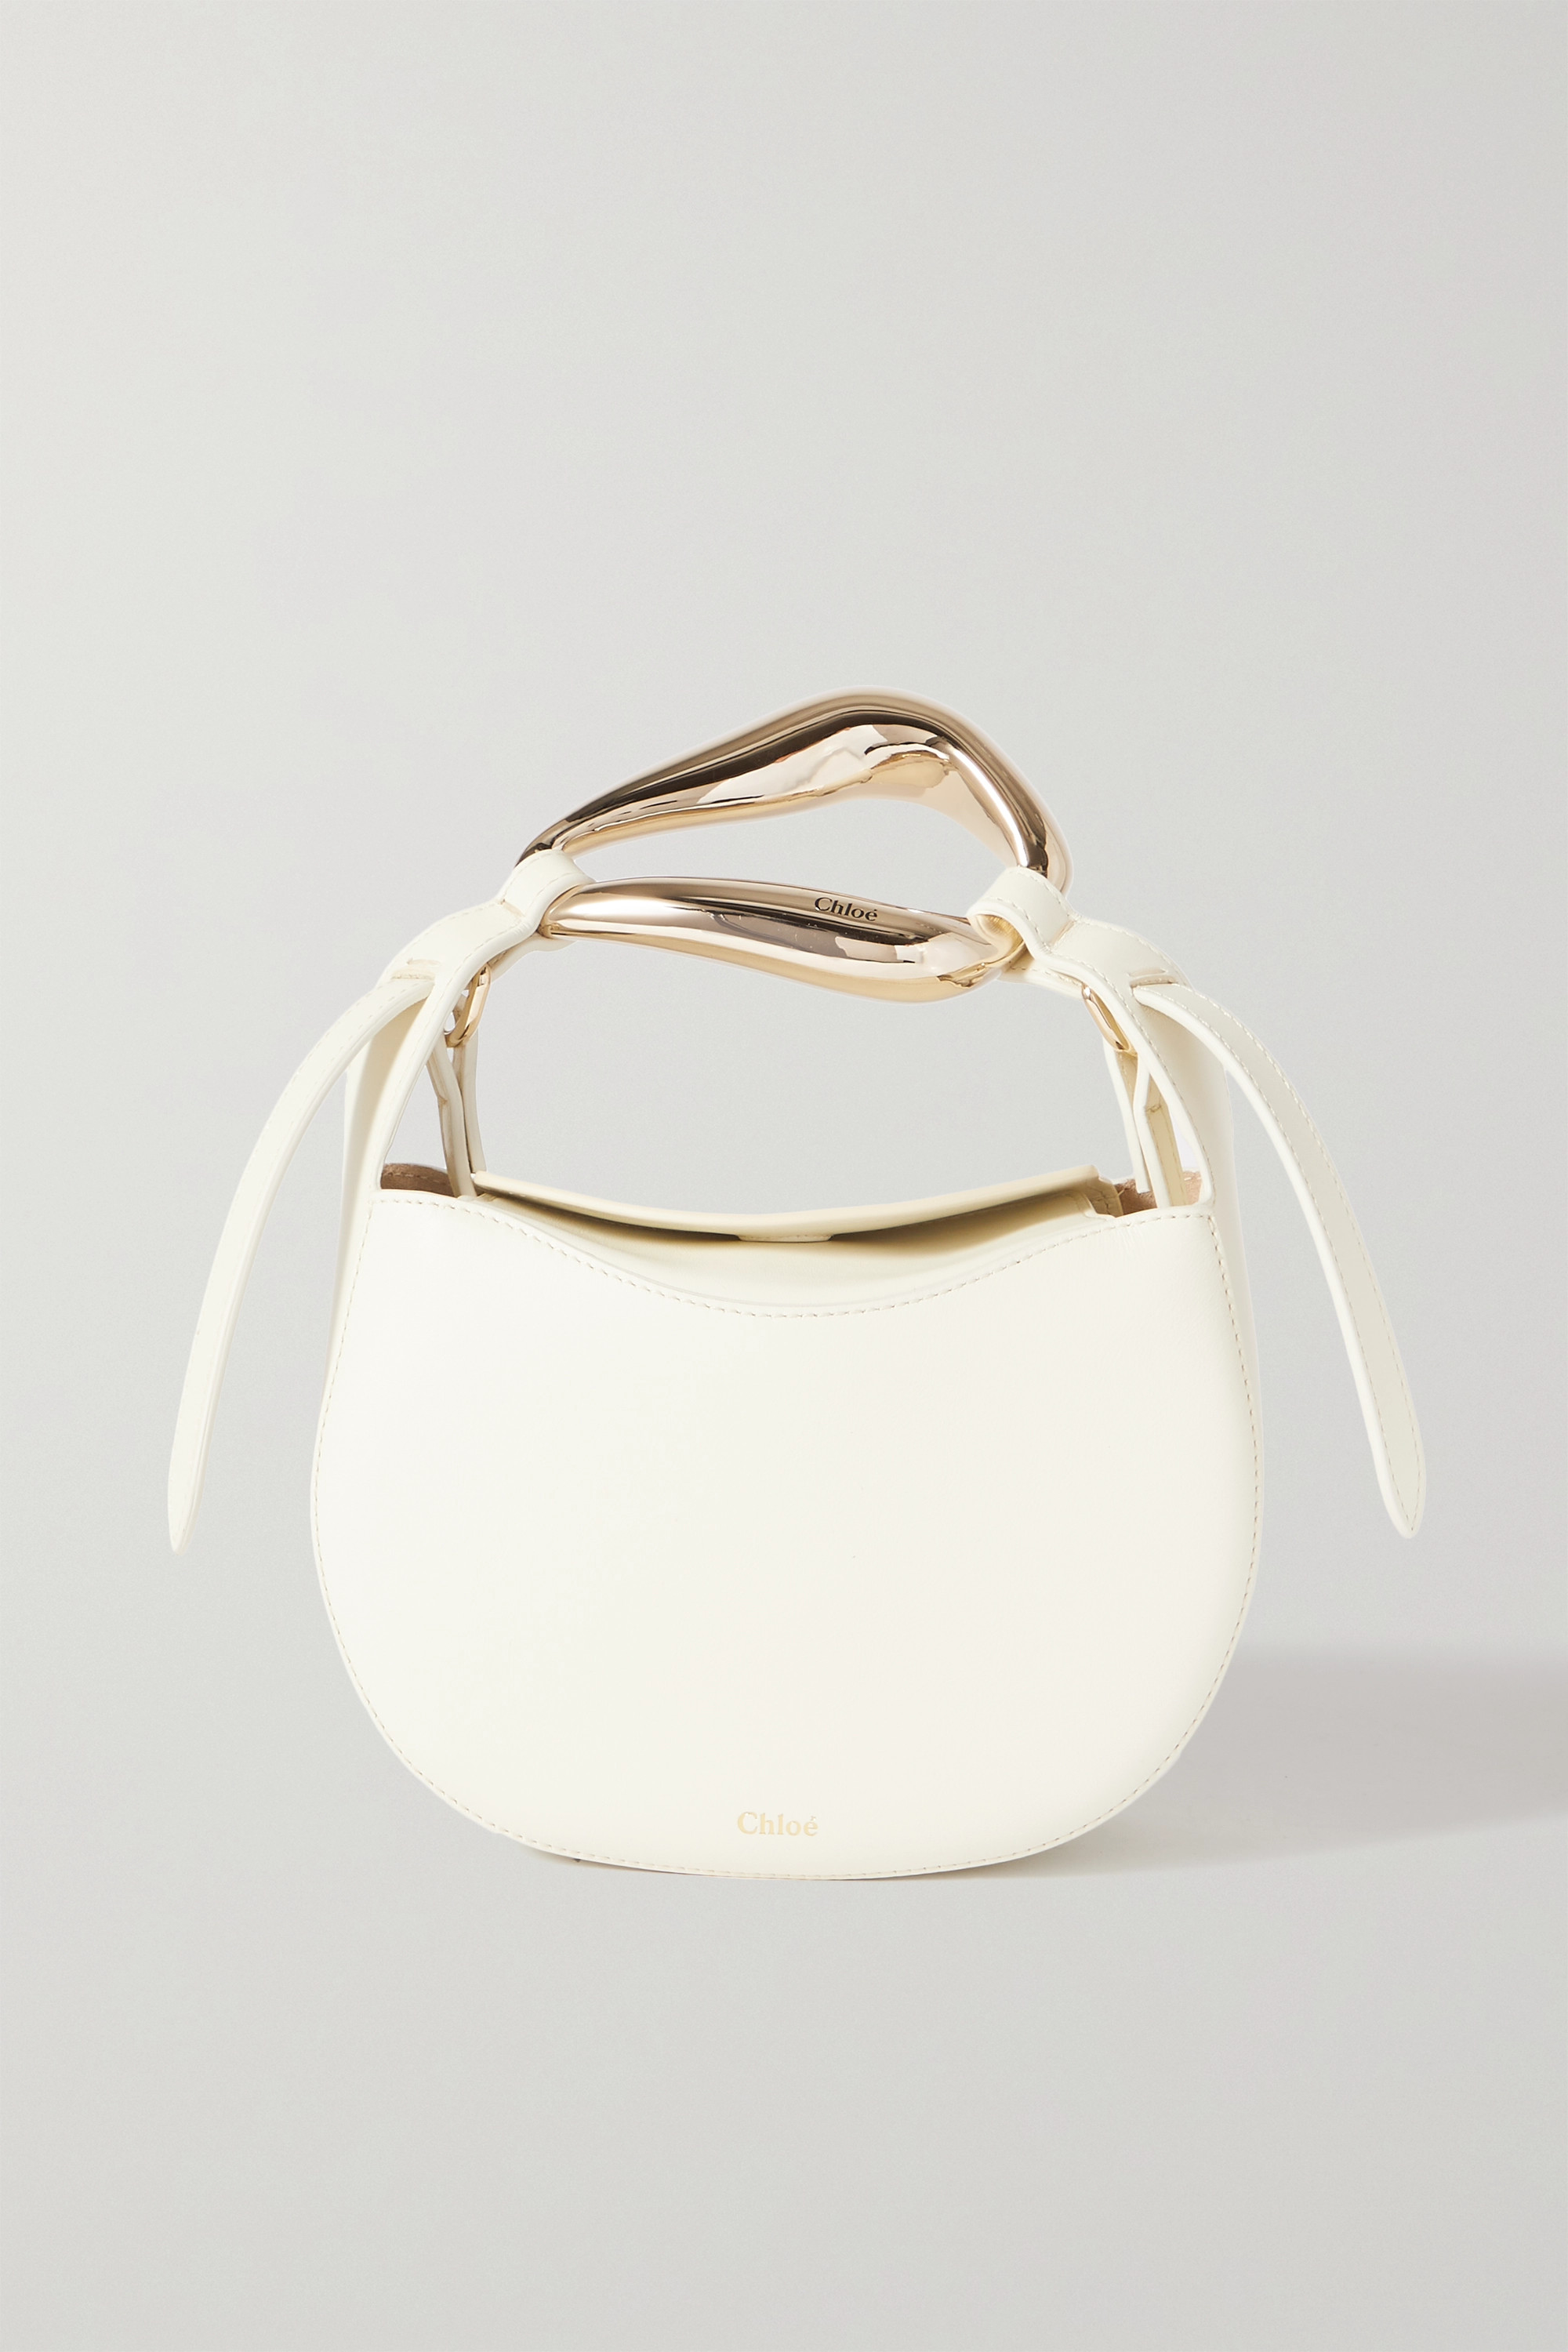 Chloé - Kiss small leather tote